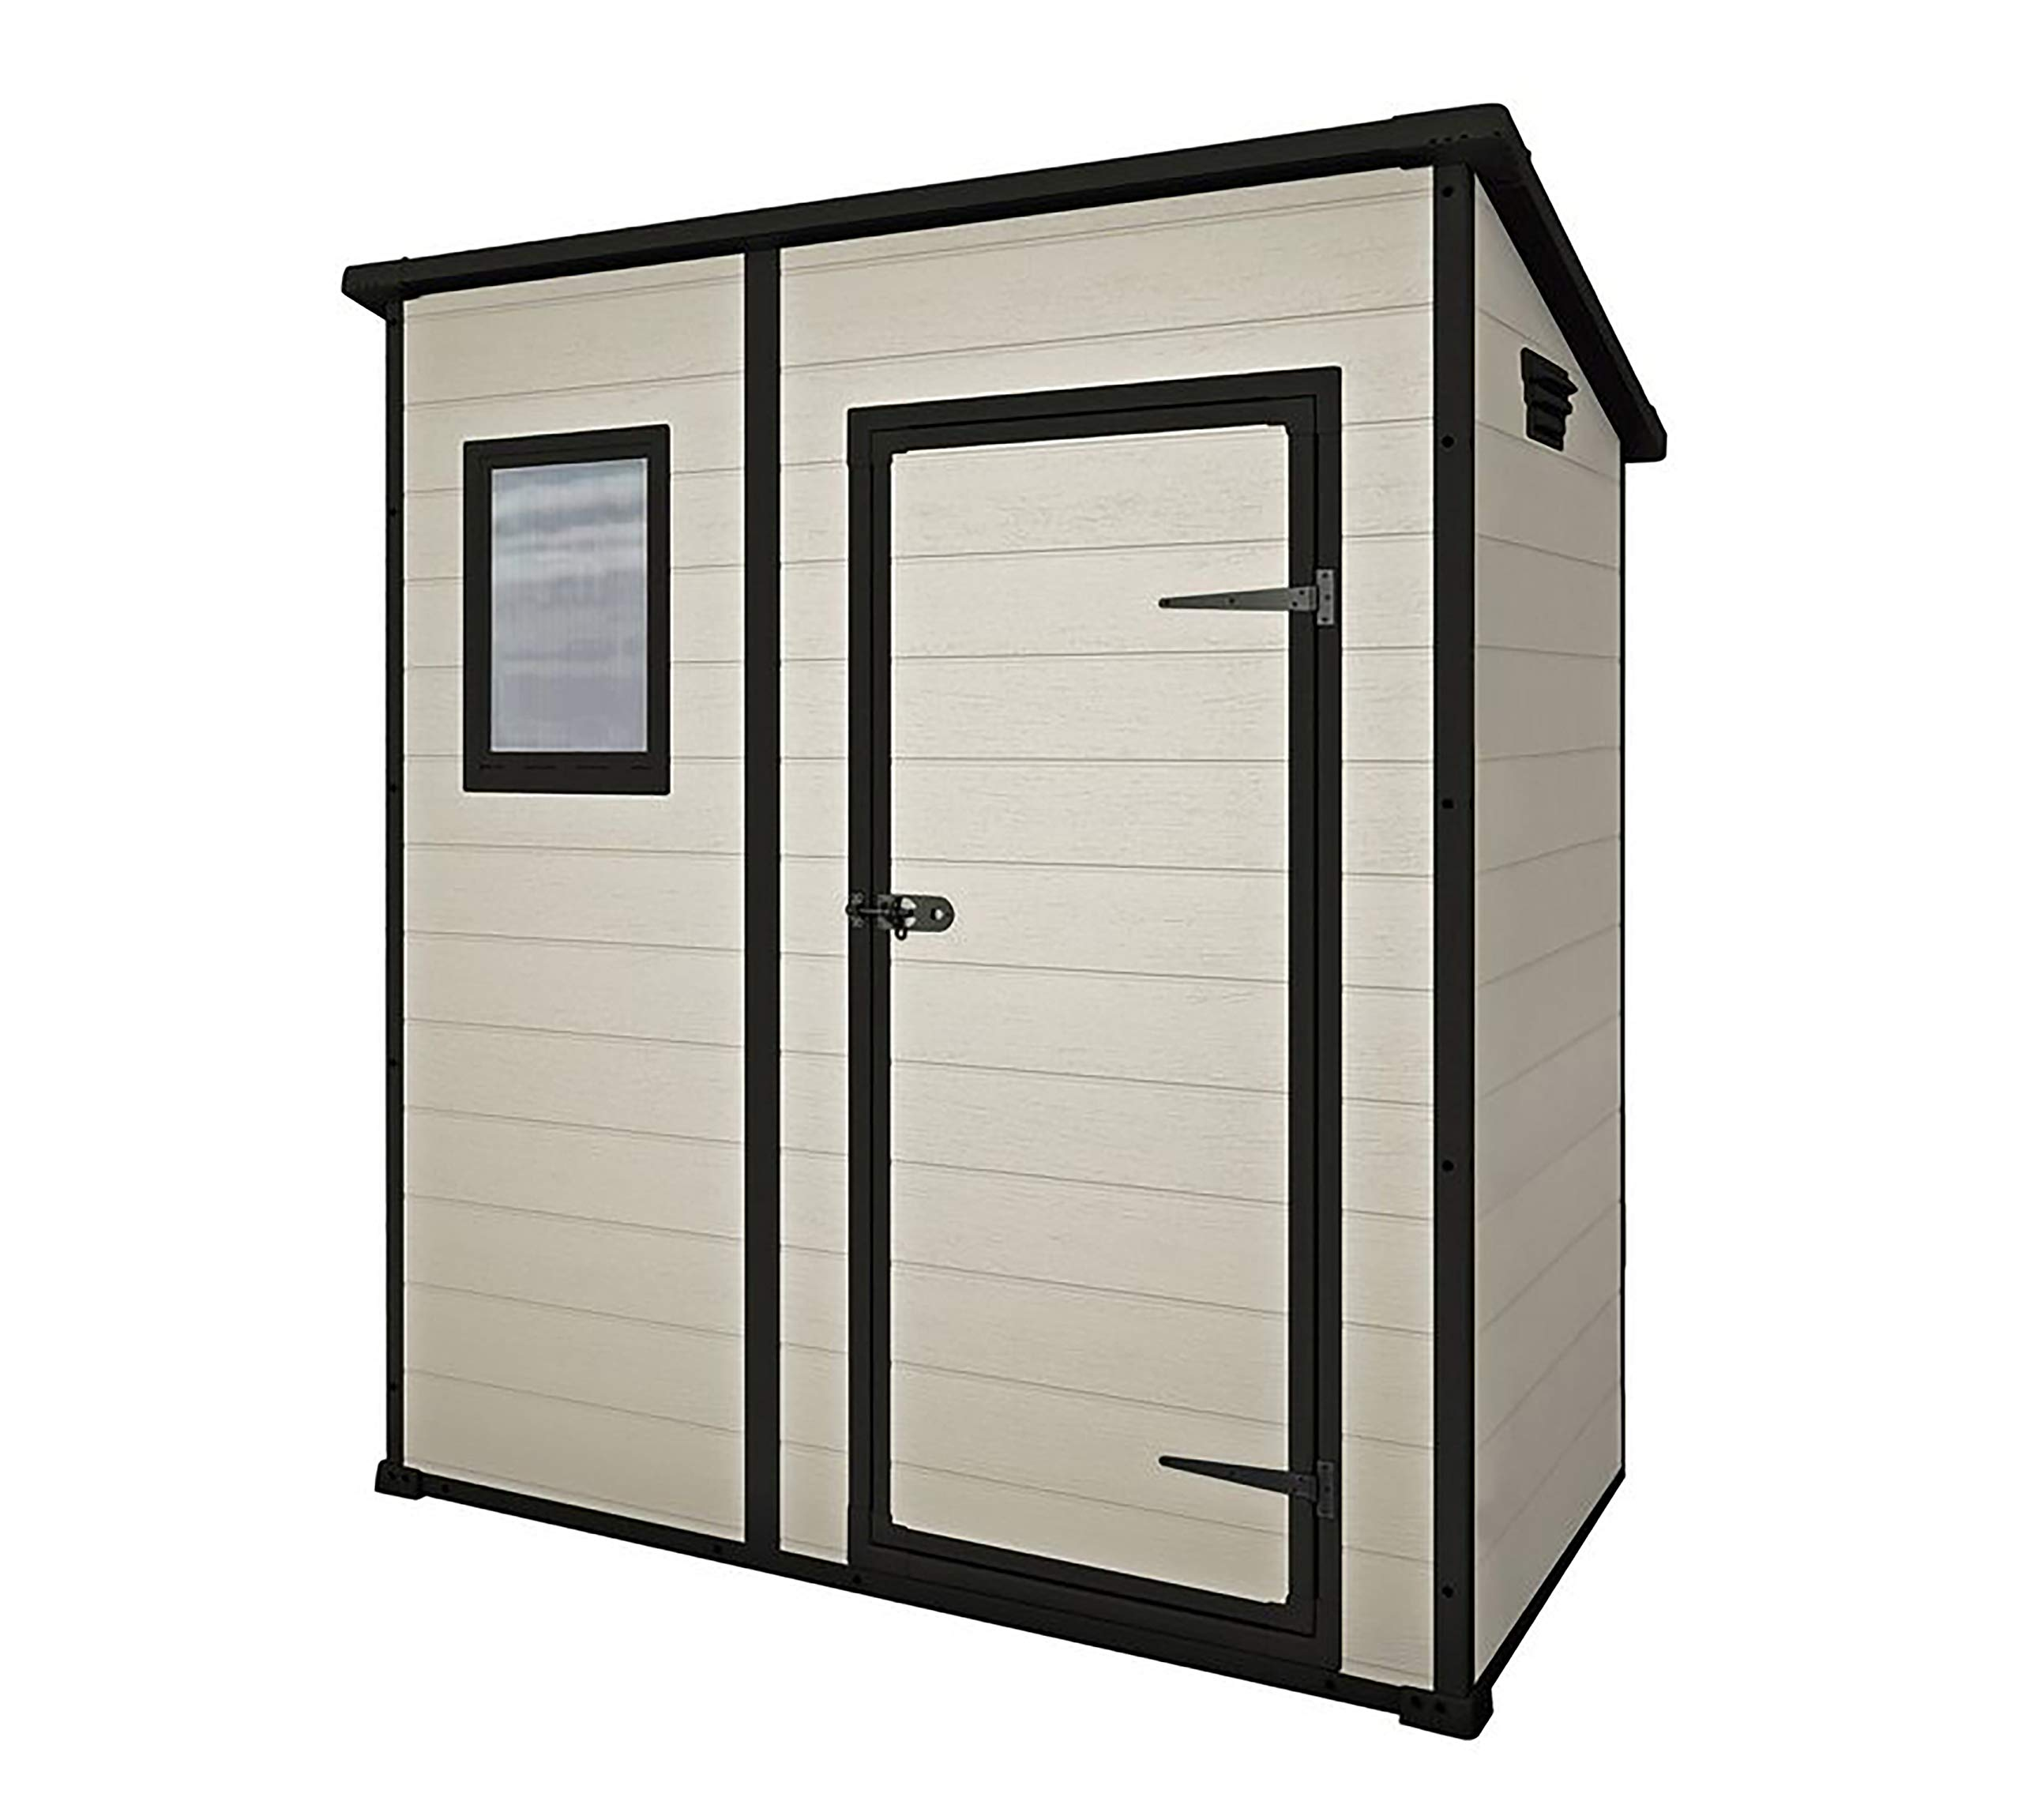 Keter Manor Pent Outdoor Plastic Garden Storage Shed, Beige/Brown, 6 x 4 ft